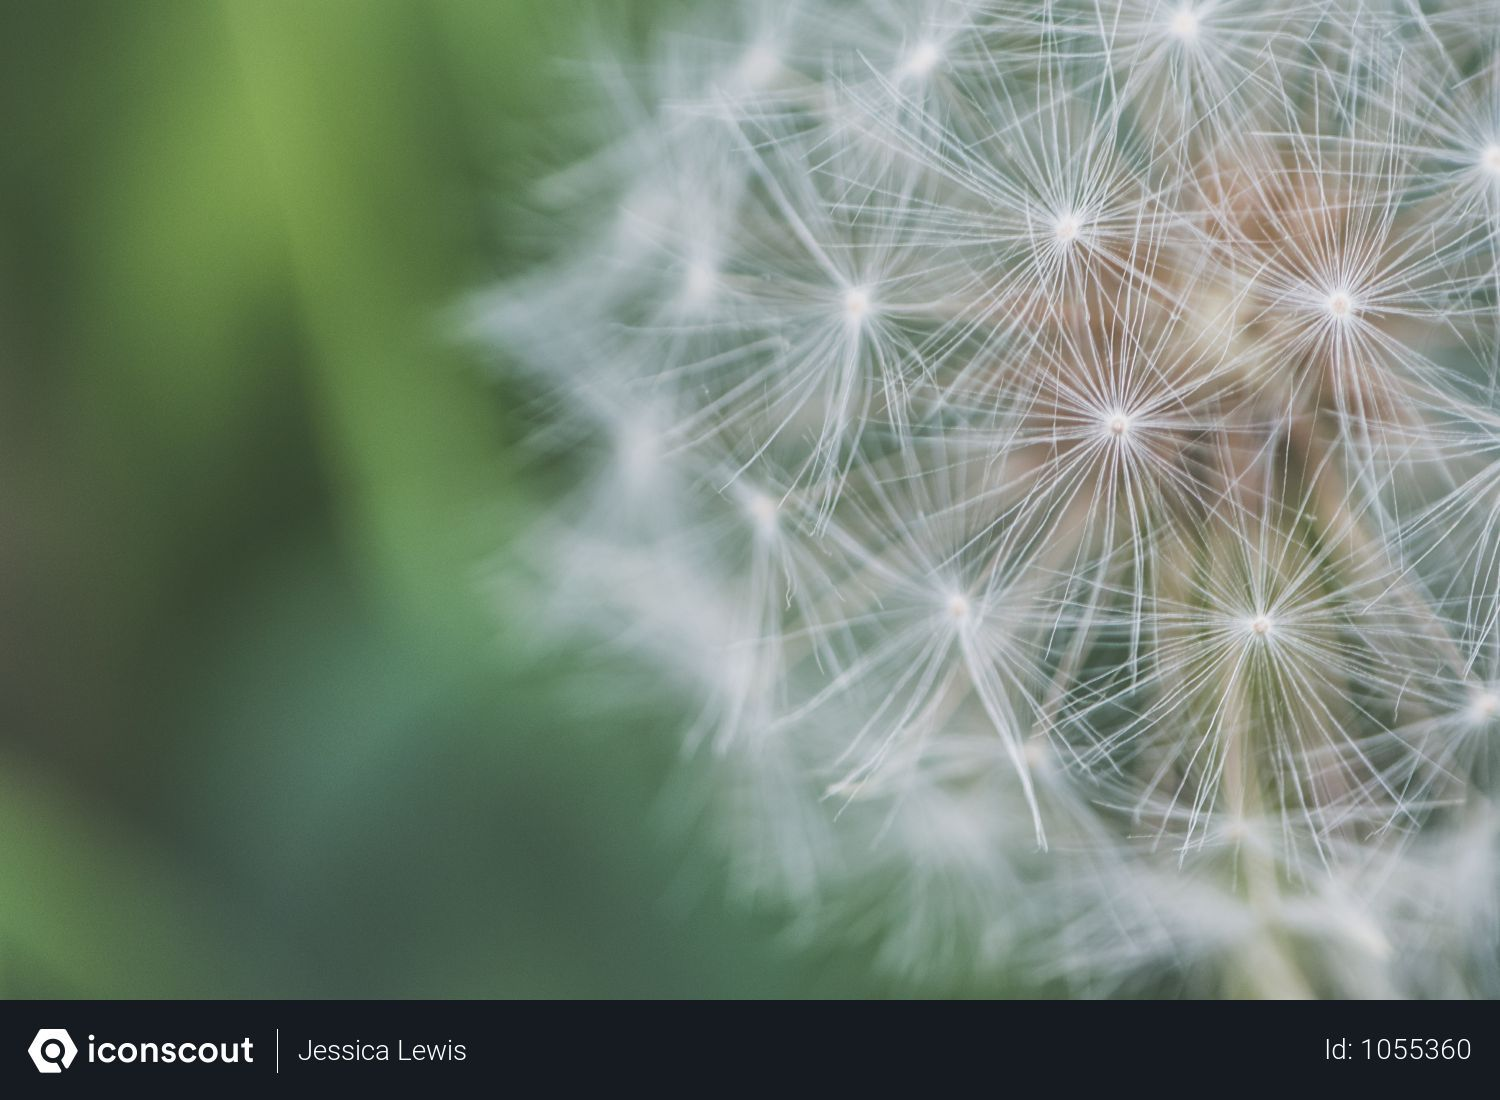 Free Close Up Photo Of Dandelion White Flower In Garden Photo Download In Png Jpg Format Bright Wallpaper Dandelion Flower White Dandelion